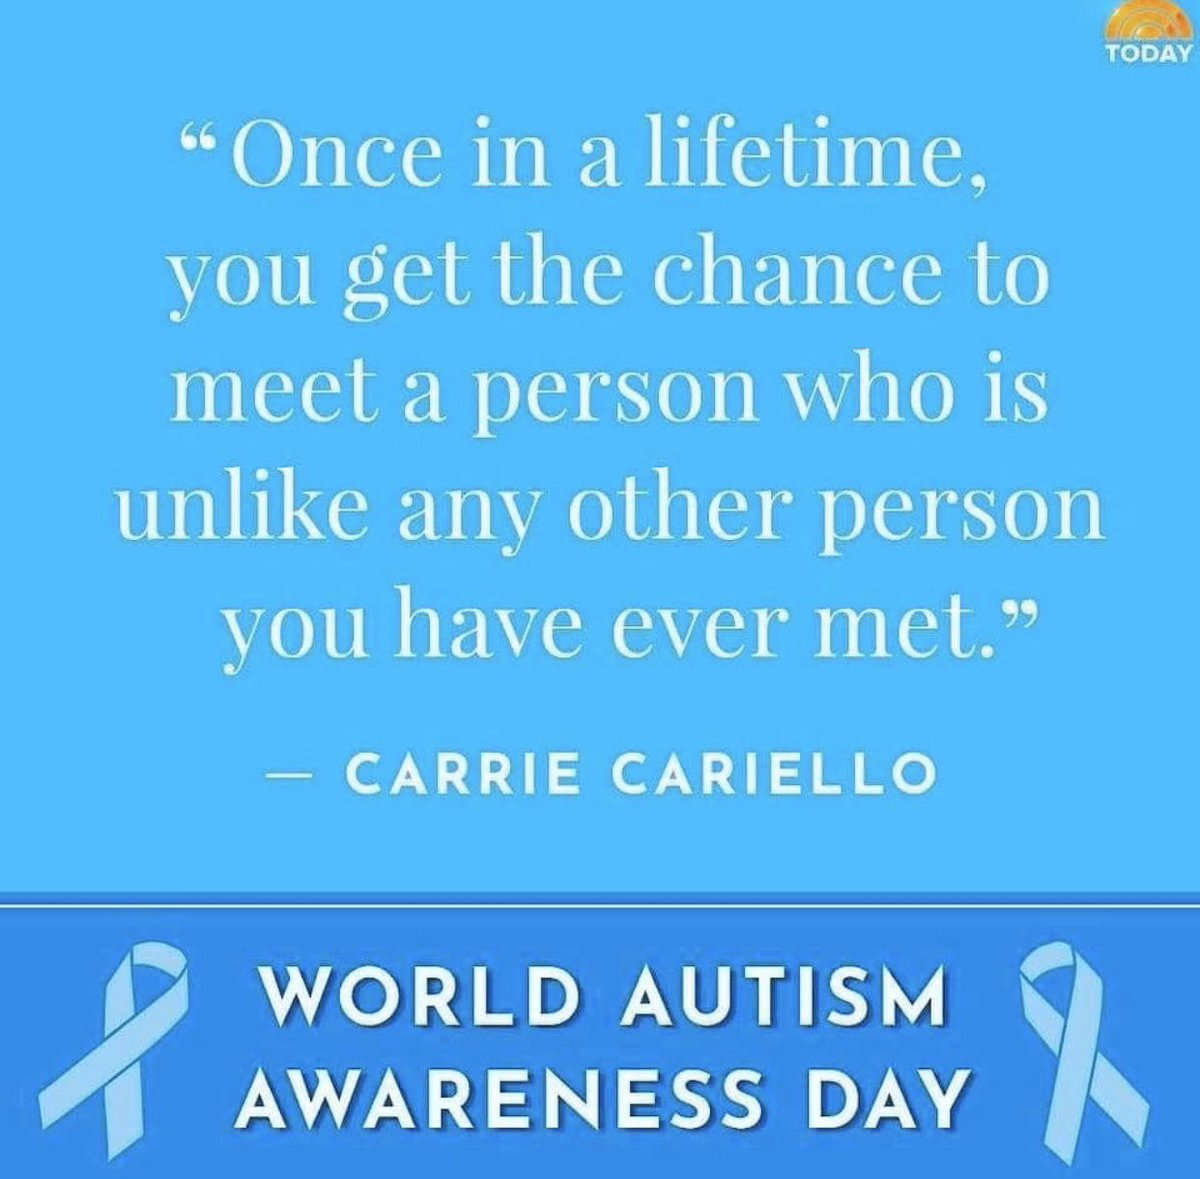 In honor of #WorldAutismAwarenessDay https://t.co/PTPZlhK44d